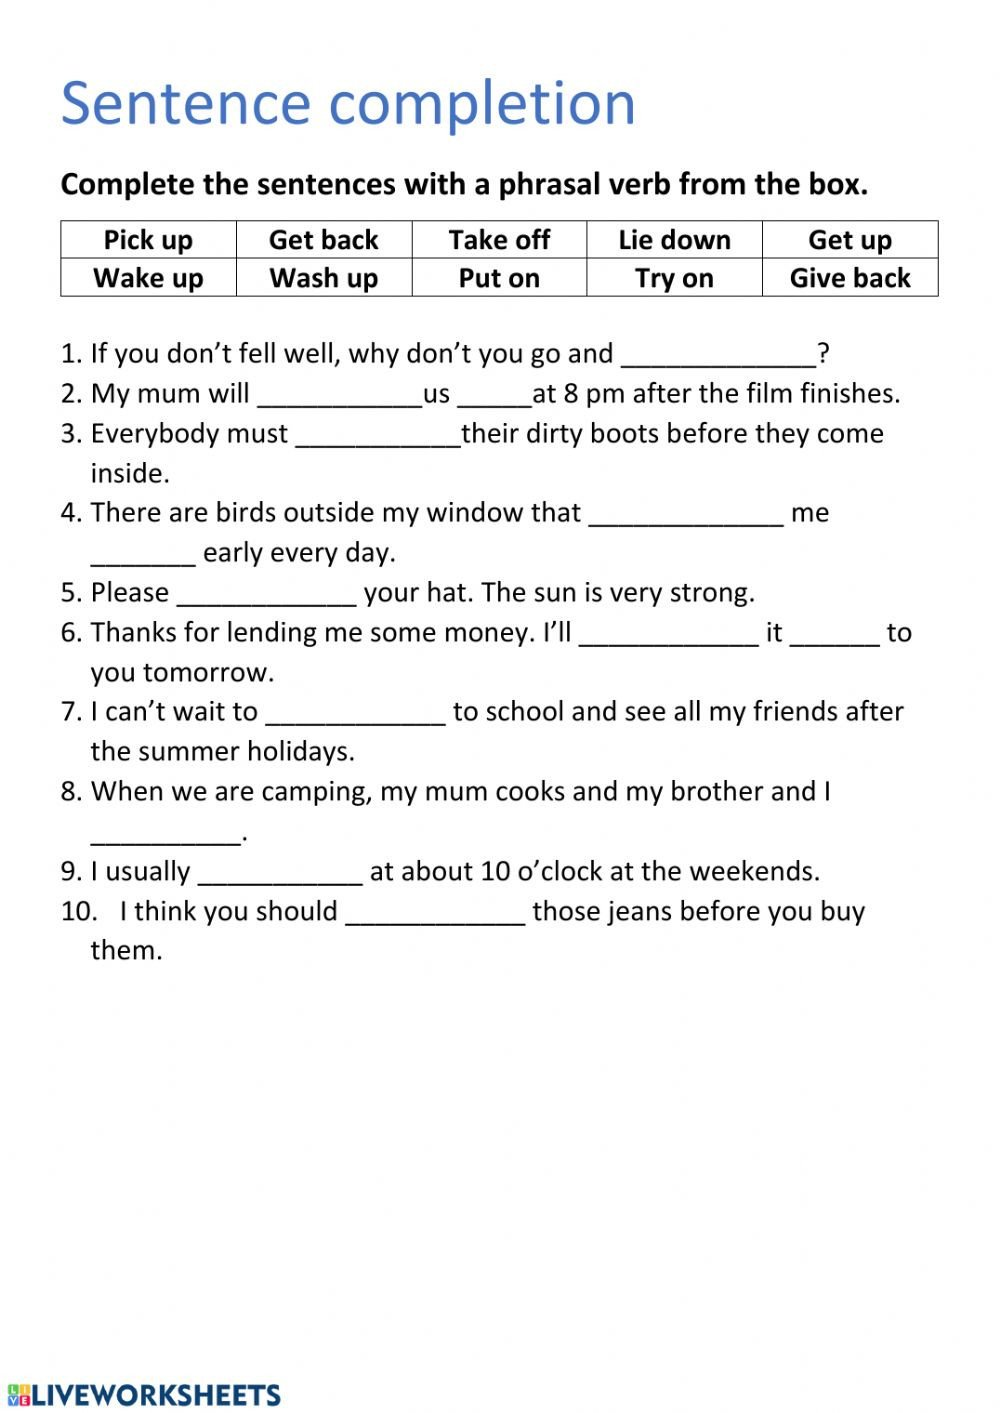 Sentence Completion Worksheets for Adults Sentence Pletion P3 Interactive Worksheet Worksheets Prek